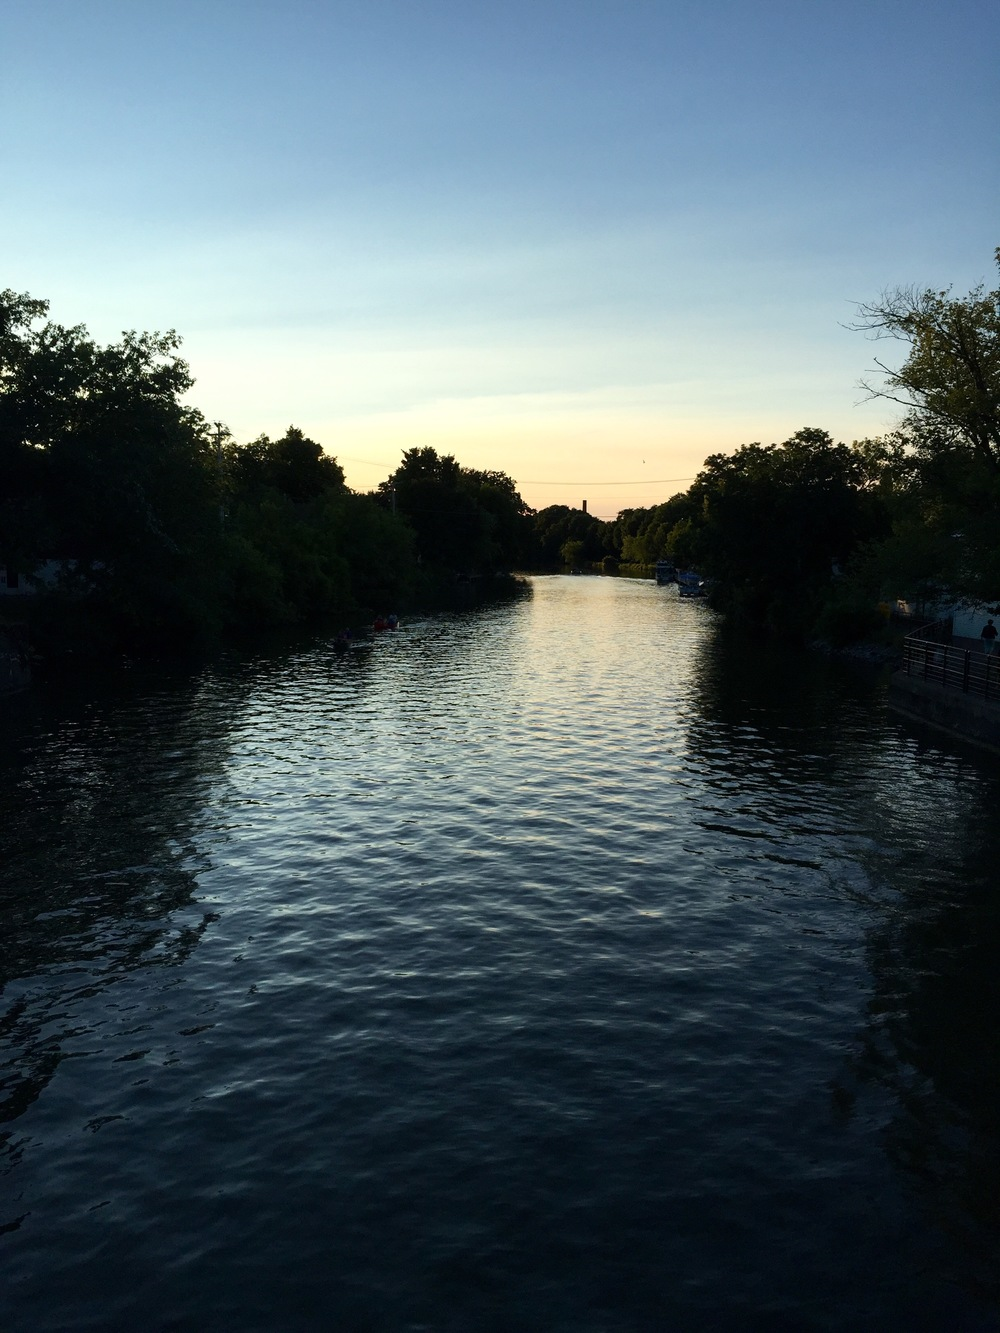 A beautiful summer night over the Erie Canal as you cross the bridge.